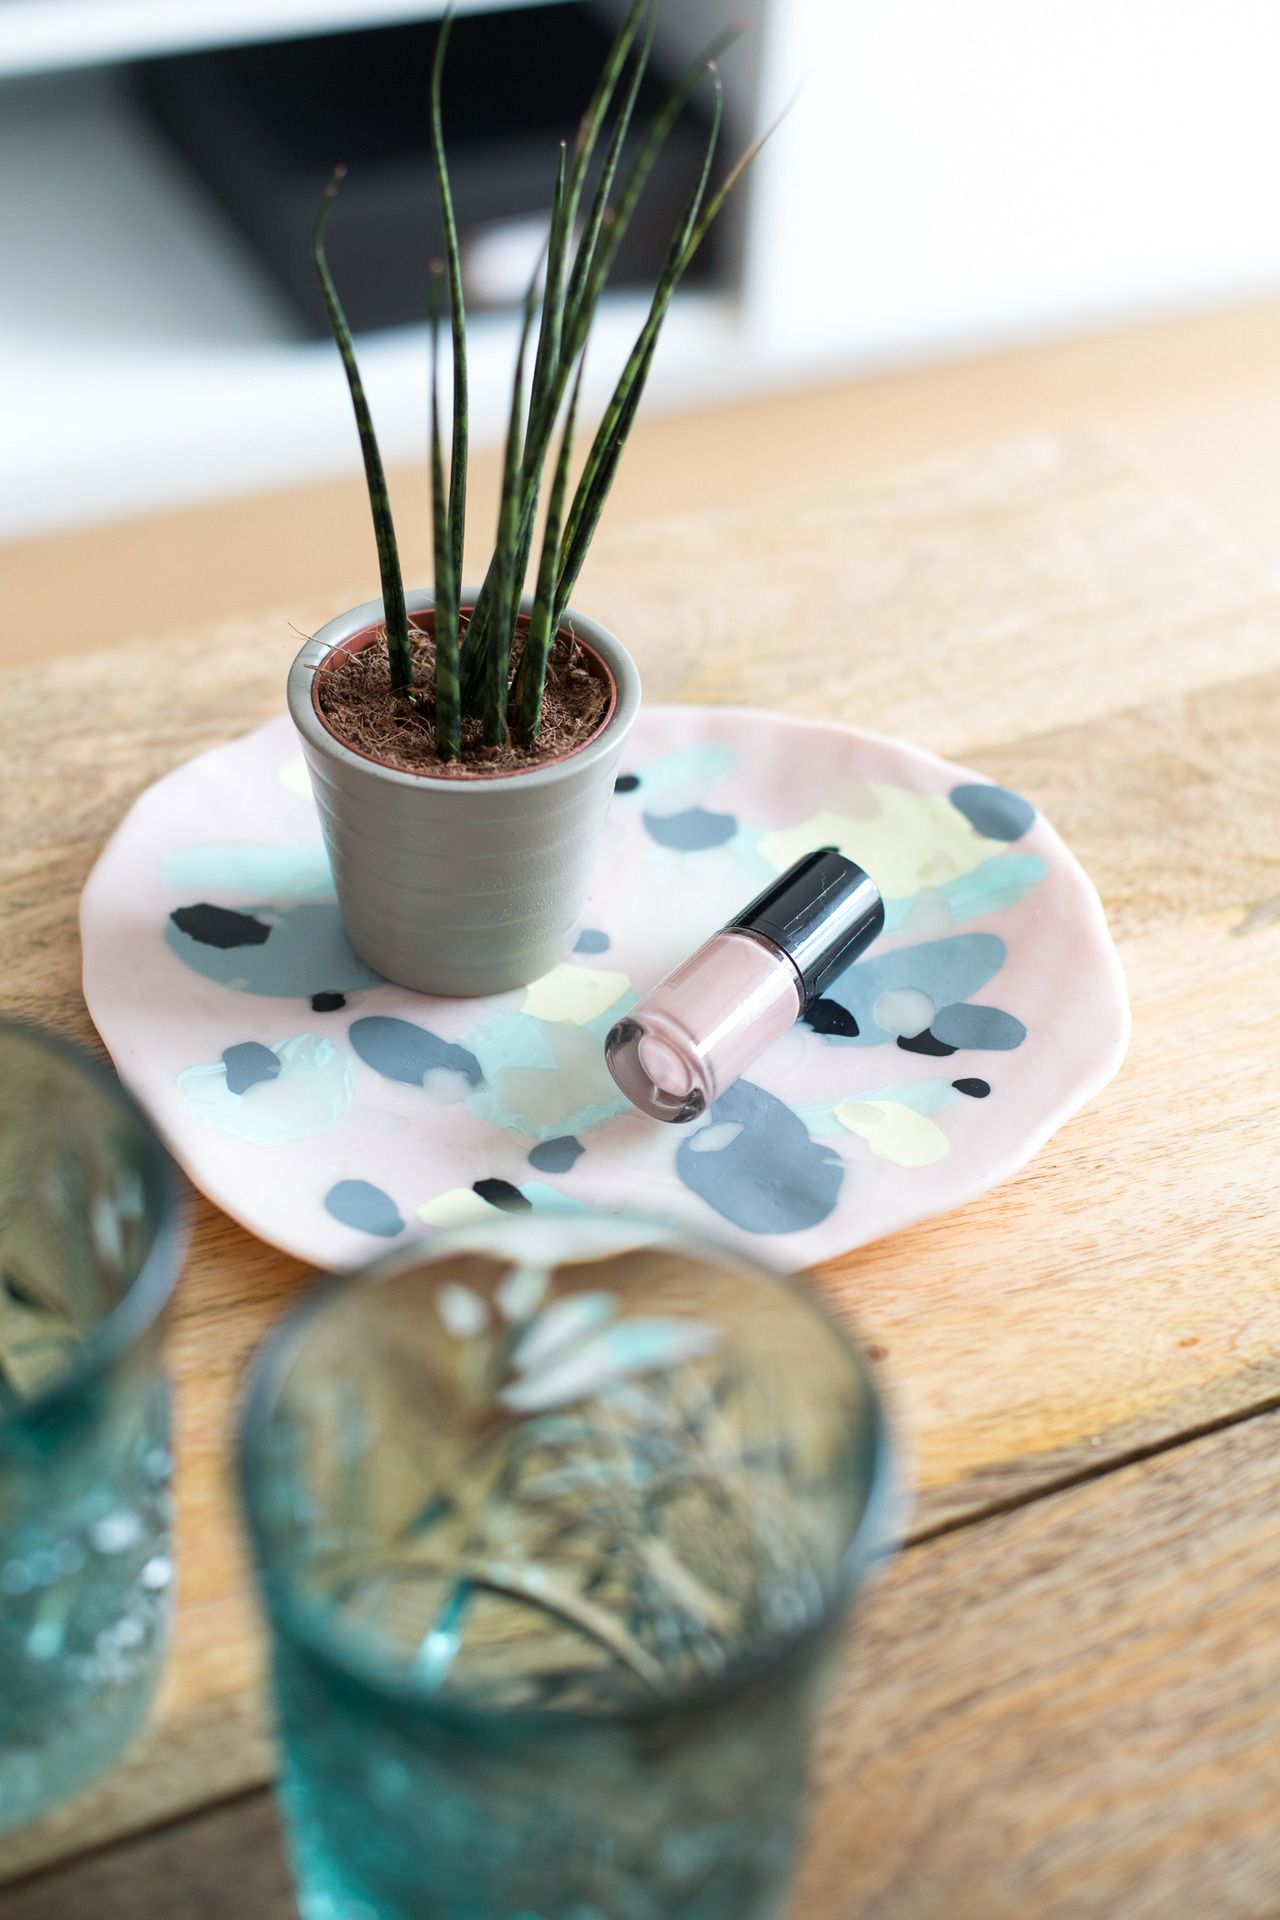 Our coffee table has been looking a little bear (I'm sure there's a joke in there somewhere) recently. As much as I love a minimal look, sometimes you need to add in some colour and …